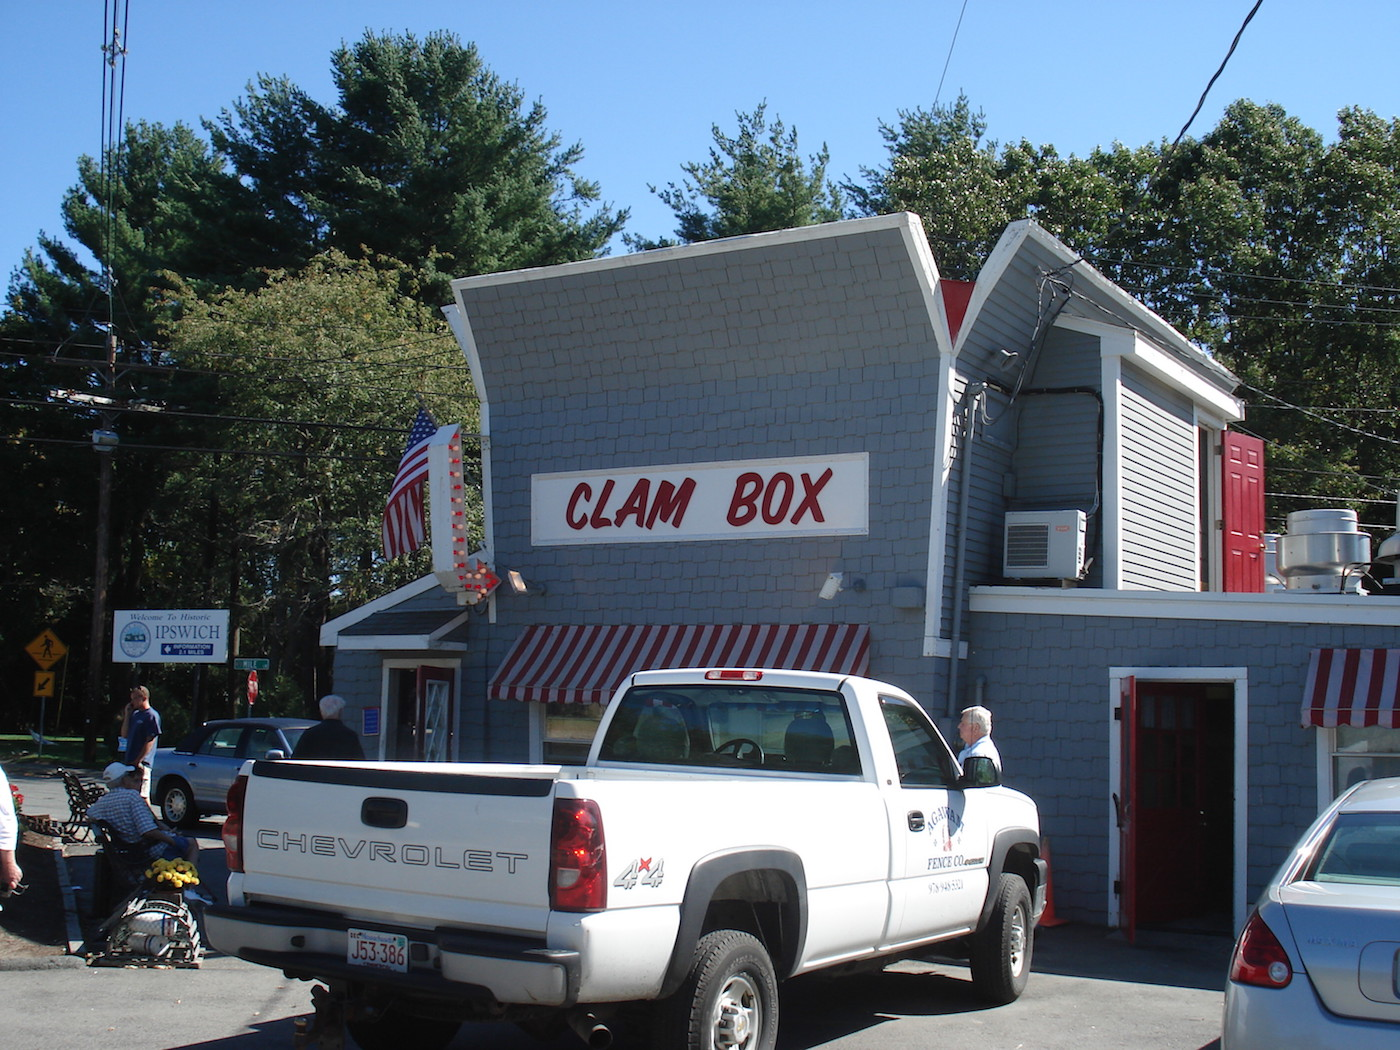 The Clam Box in Ipswich, Massachusetts (photo by Edward O'Connor/Flickr)